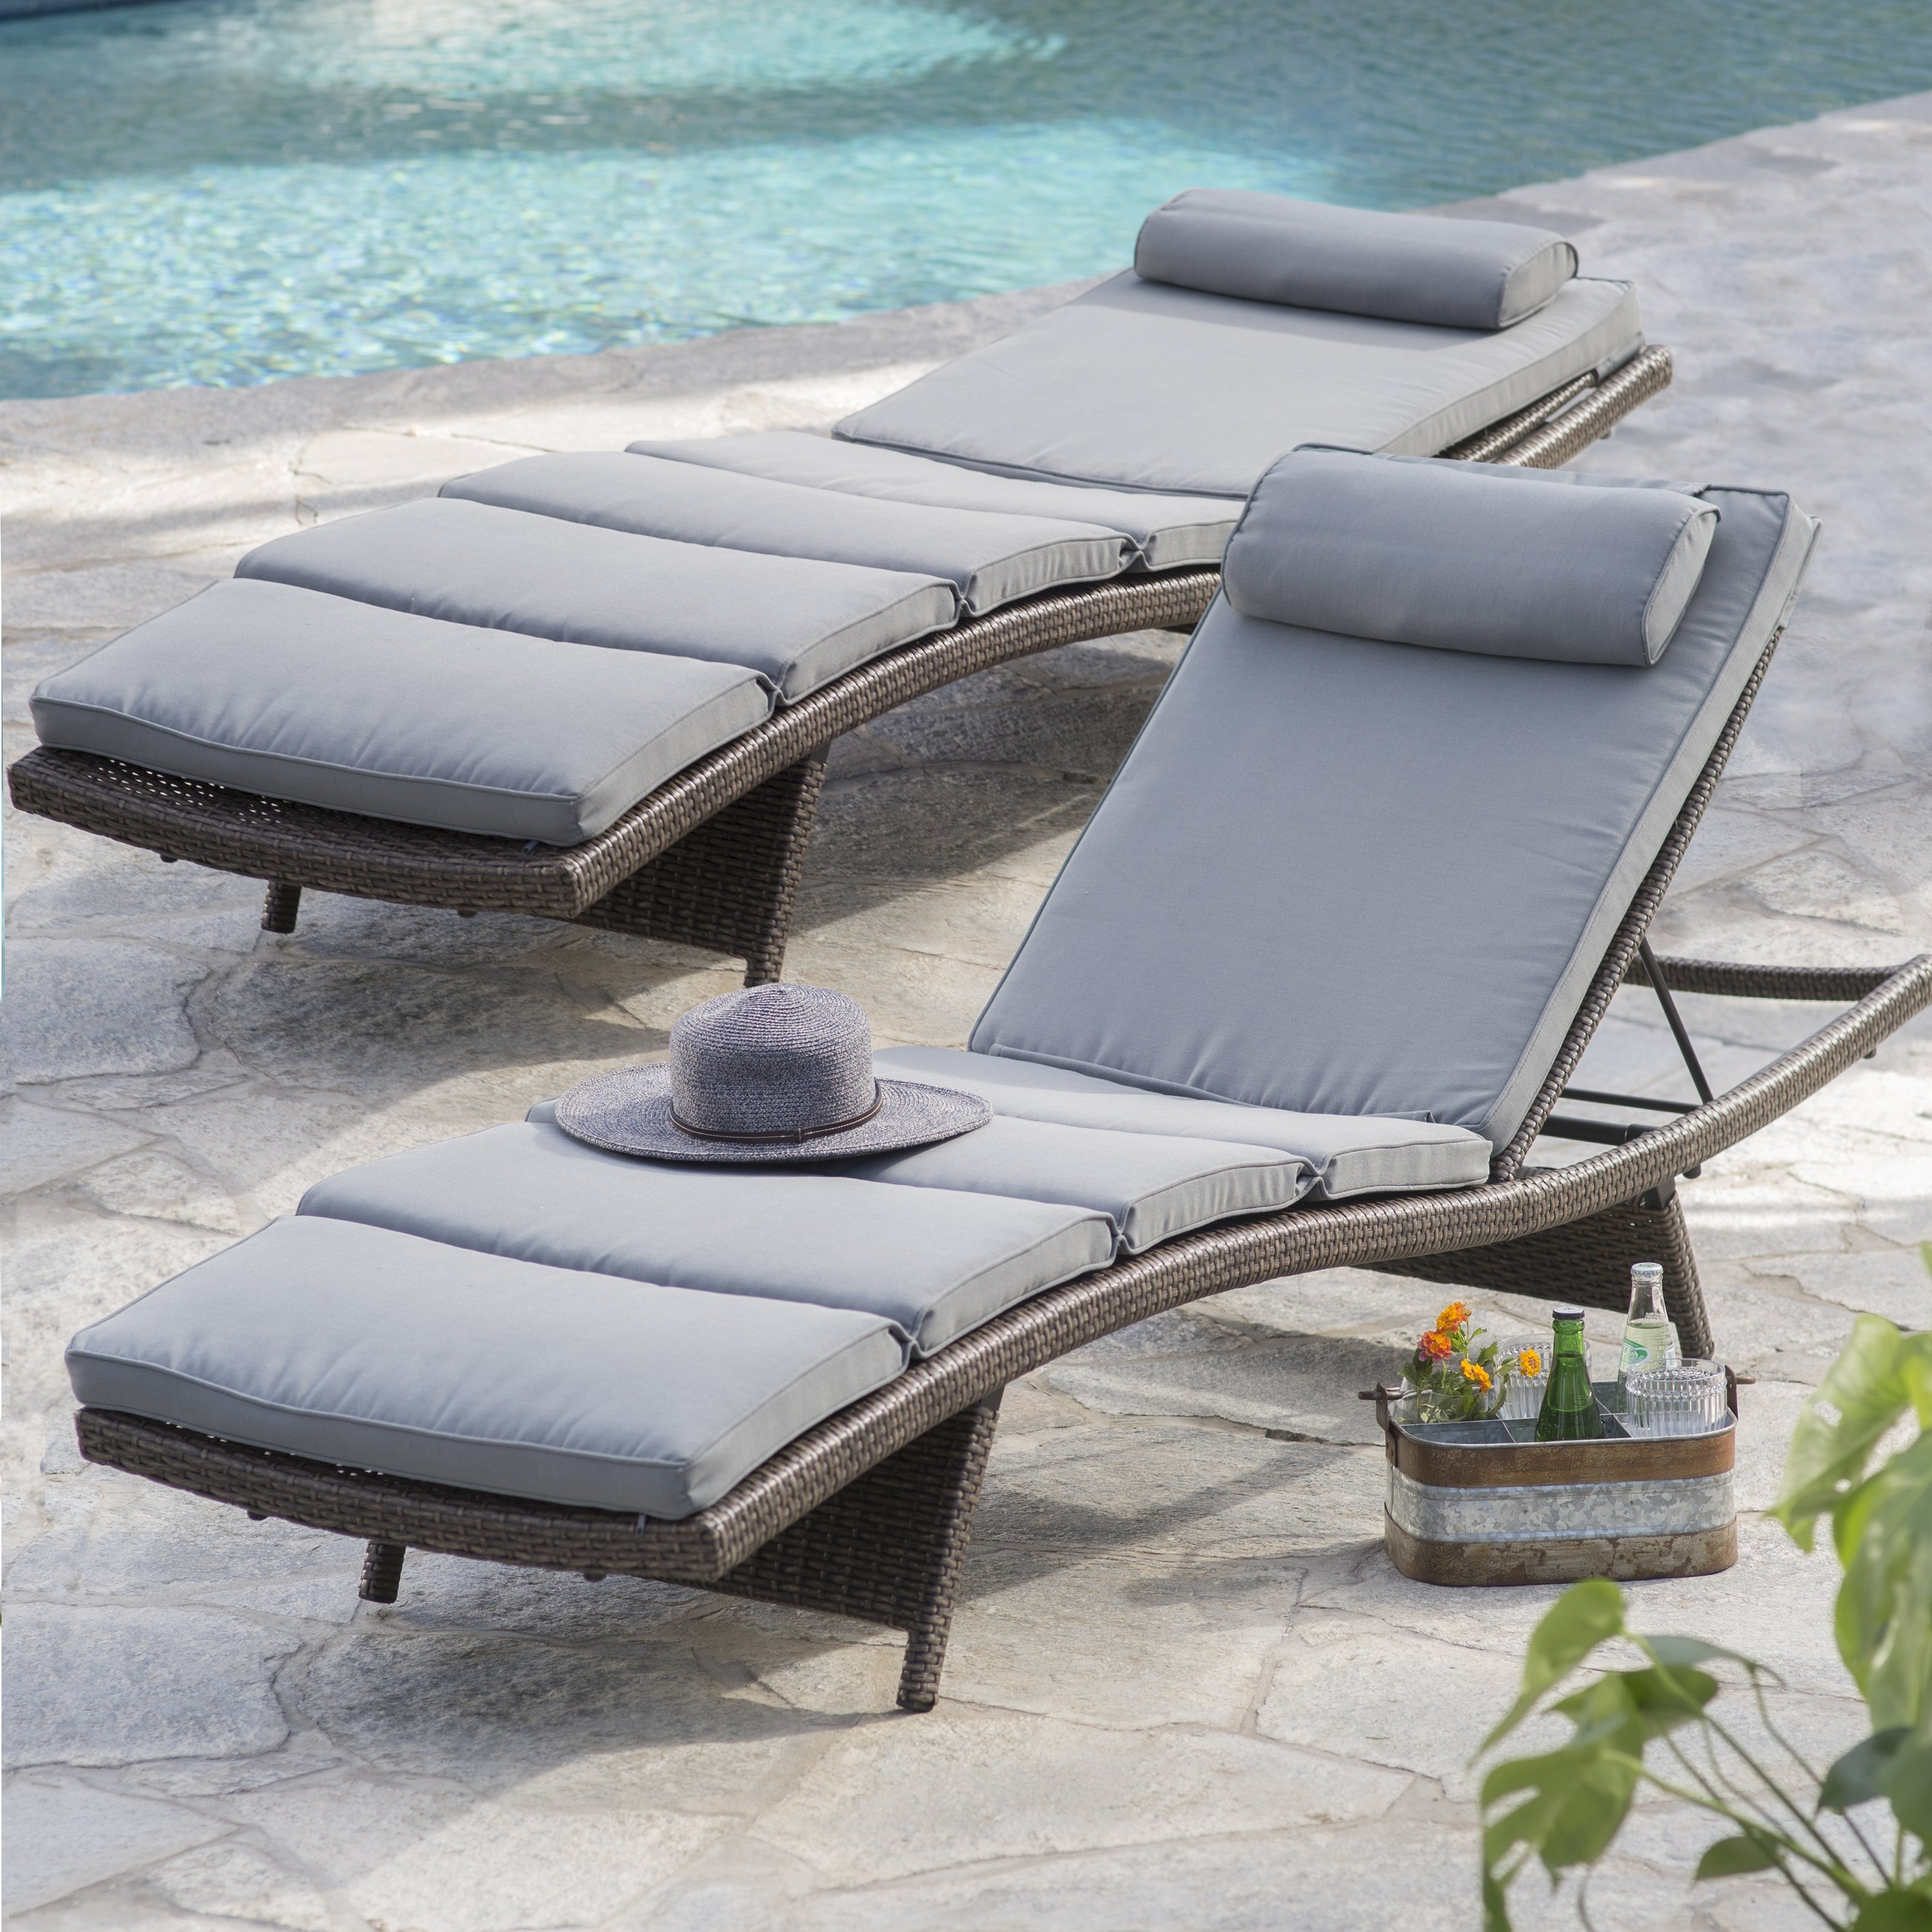 Chaise Lounge Chairs For Outdoor In Well Known Keter Outdoor Chaise Lounge – Set Of (View 10 of 15)